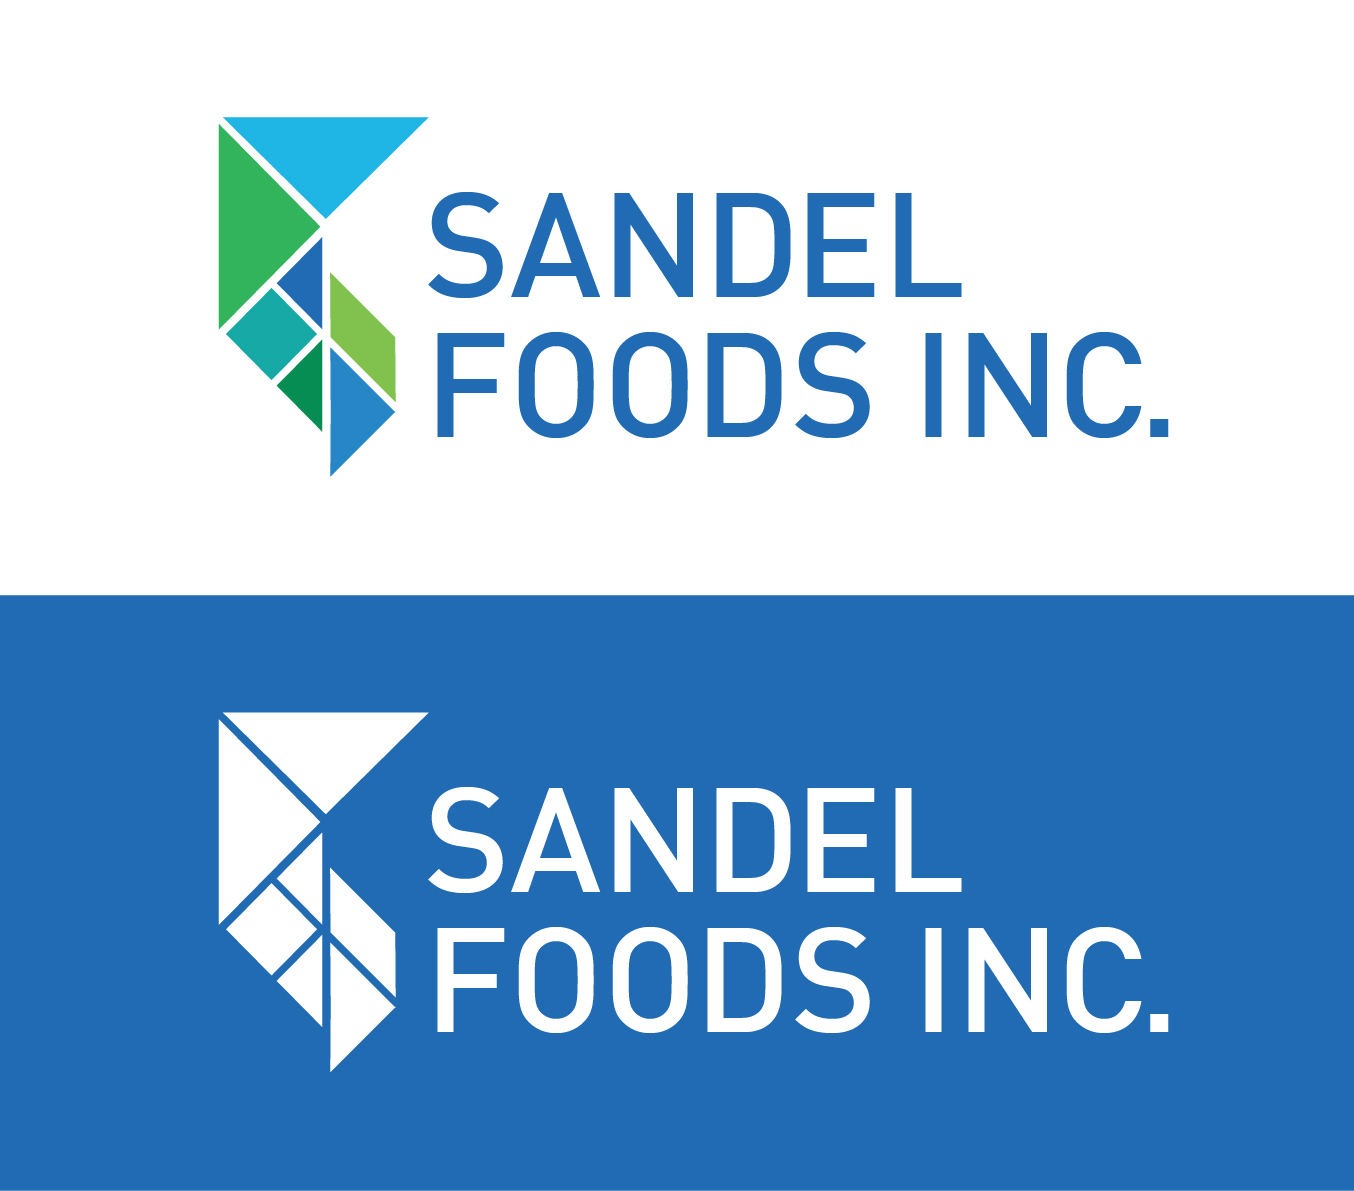 Logo Design by k92w - Entry No. 27 in the Logo Design Contest Fun Logo Design for Sandel Foods Inc.